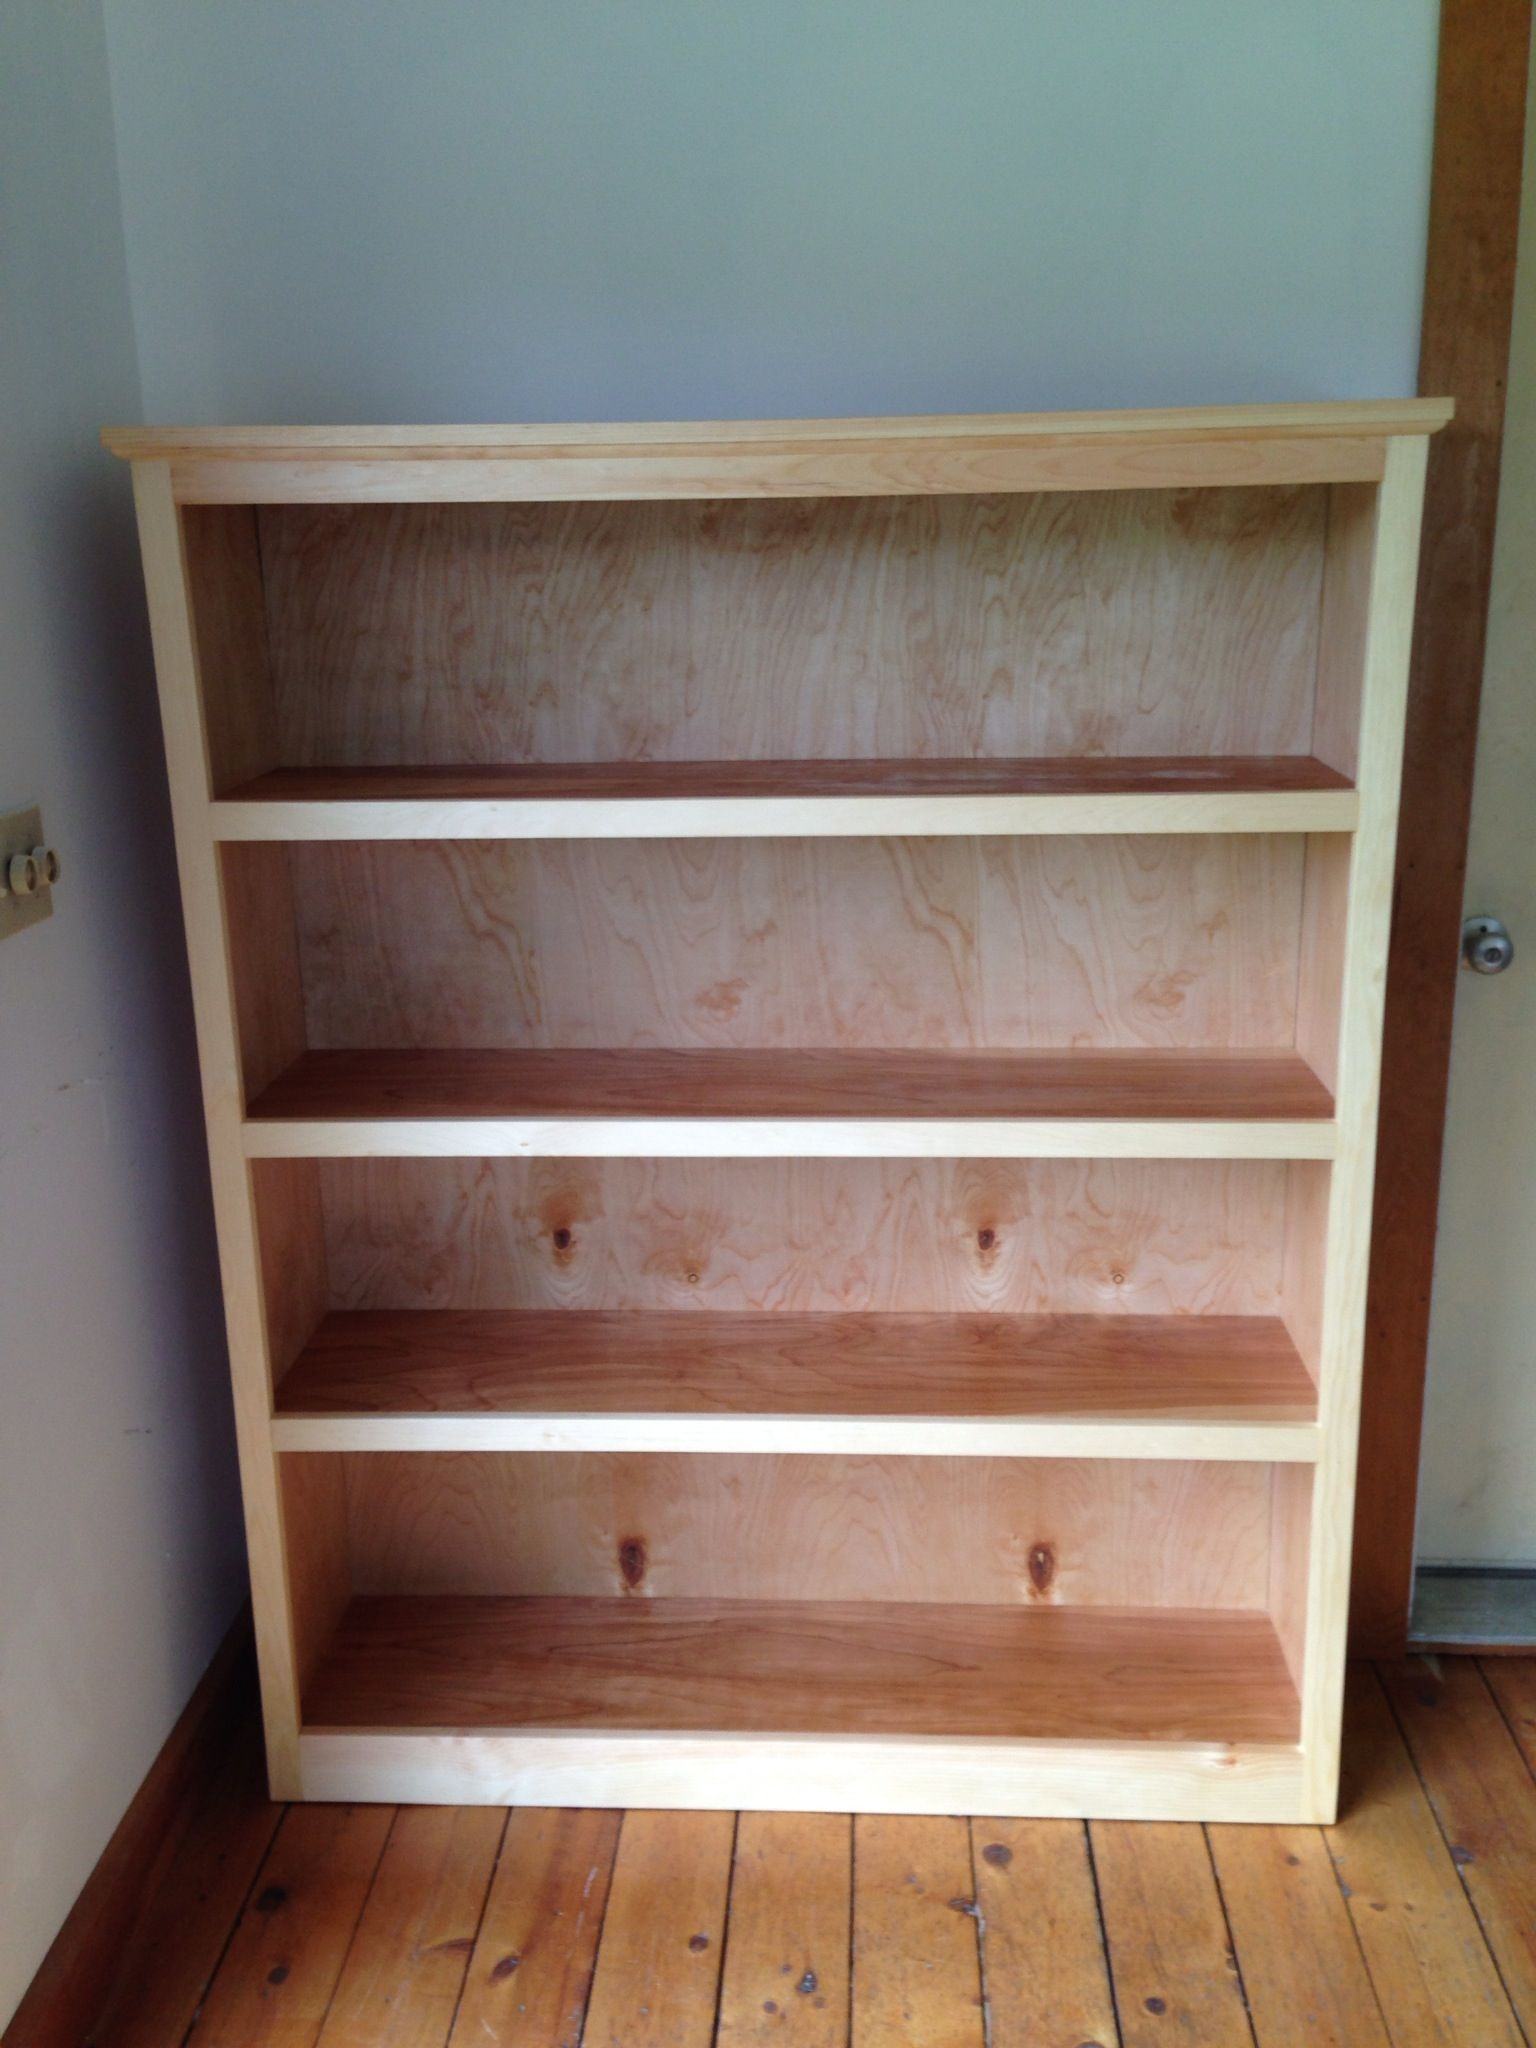 Easy Bookshelf Made With Kreg Jig And Furniture Grade Plywood